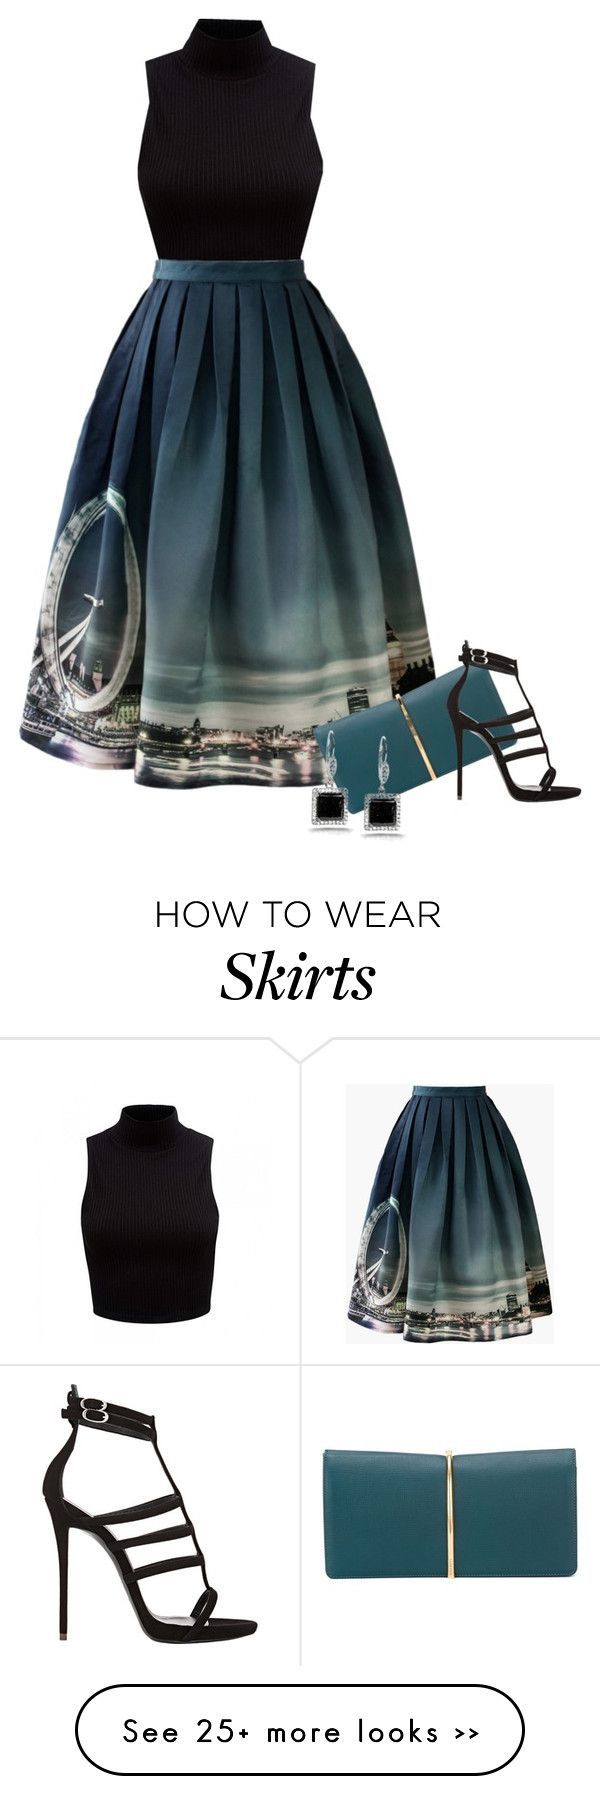 """""""Prints & Patterns for Summer #/5: Midi Skirts"""" by detroitfashionista on Polyvore"""